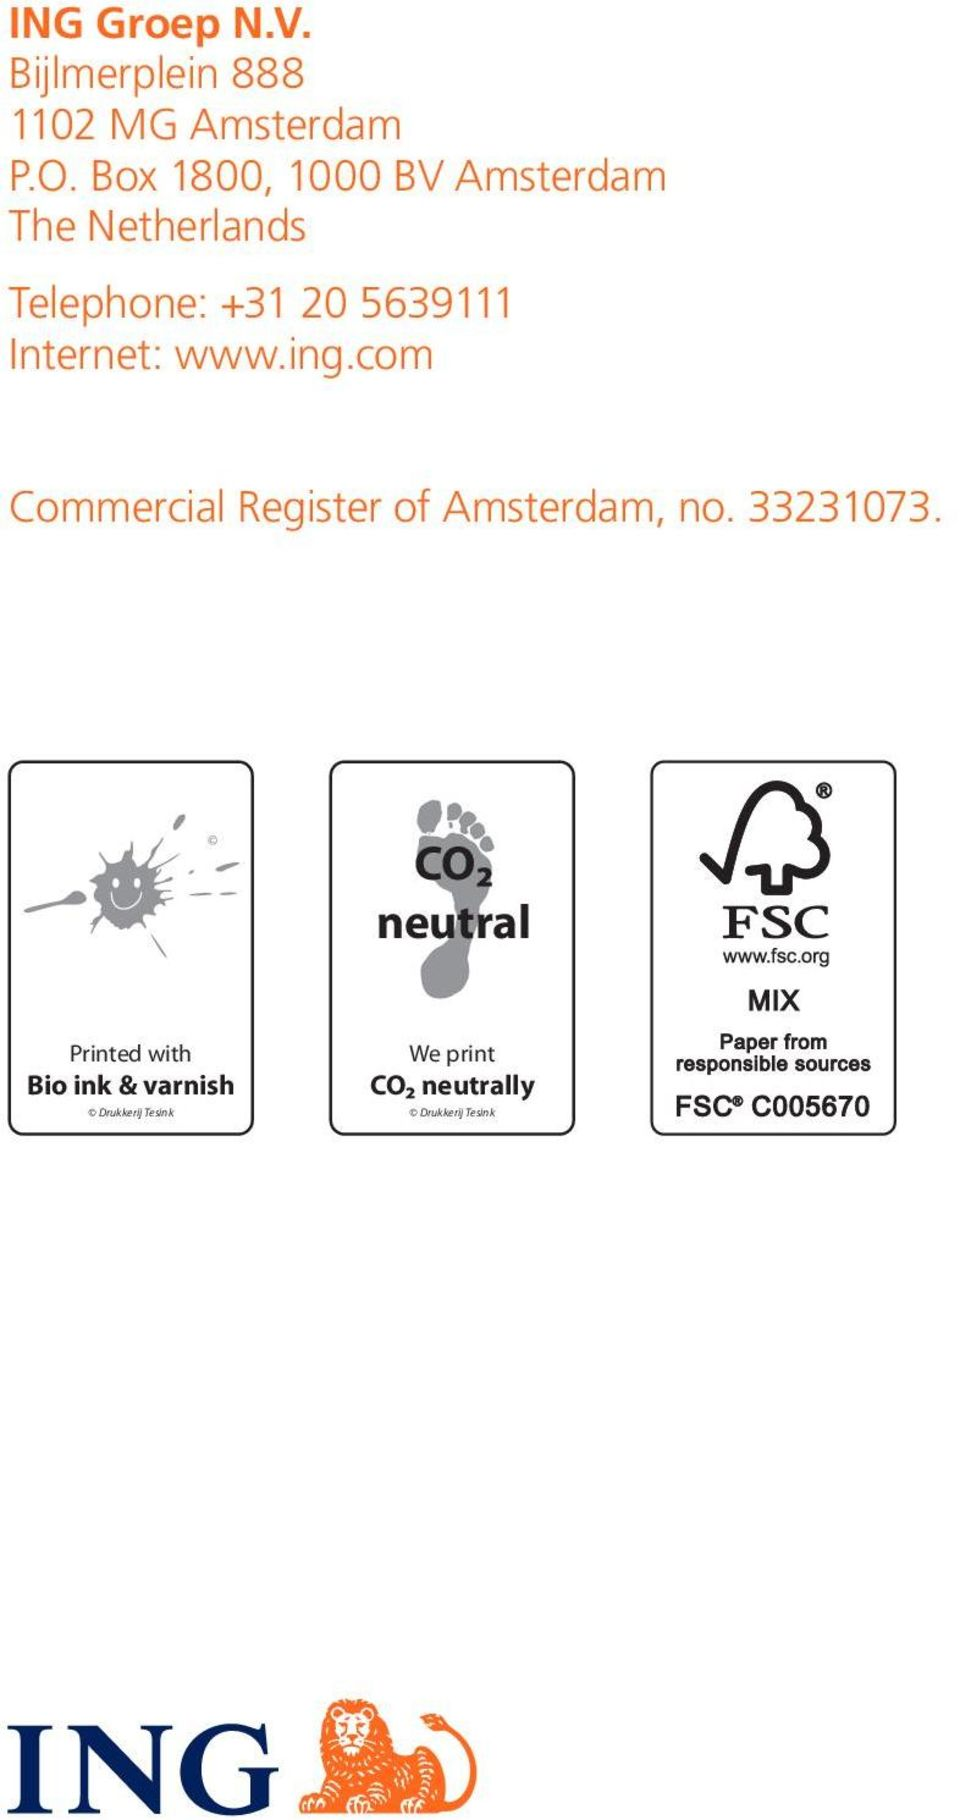 Internet: www.ing.com Commercial Register of Amsterdam, no. 33231073.